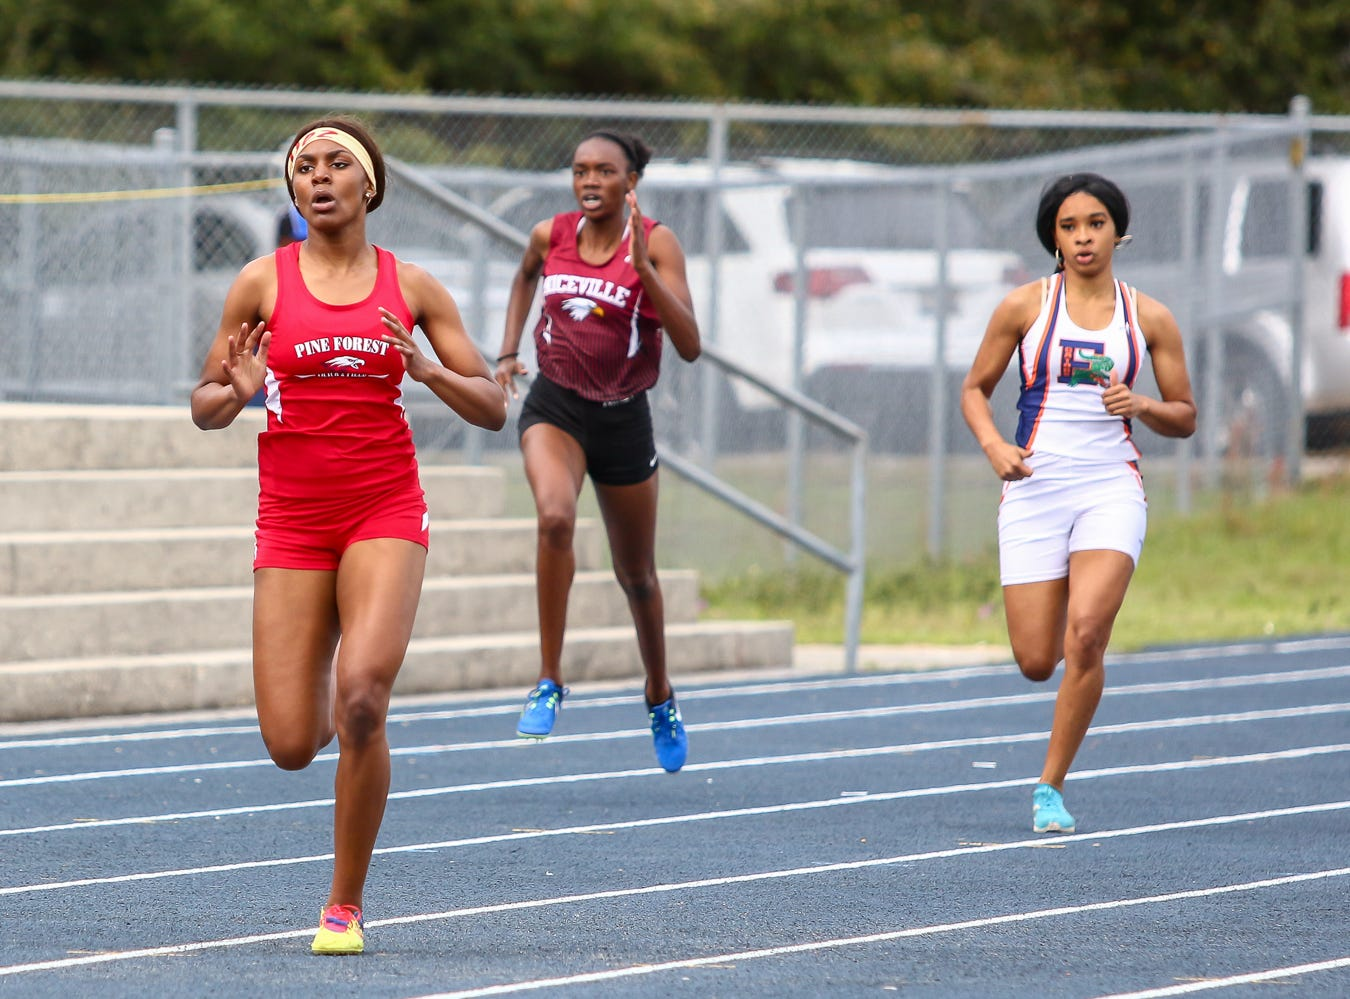 Pine Forest's Desirae McCants competes in the 400m dash on Saturday, March 9, 2019, during the Aggie Invitational at Washington High School.